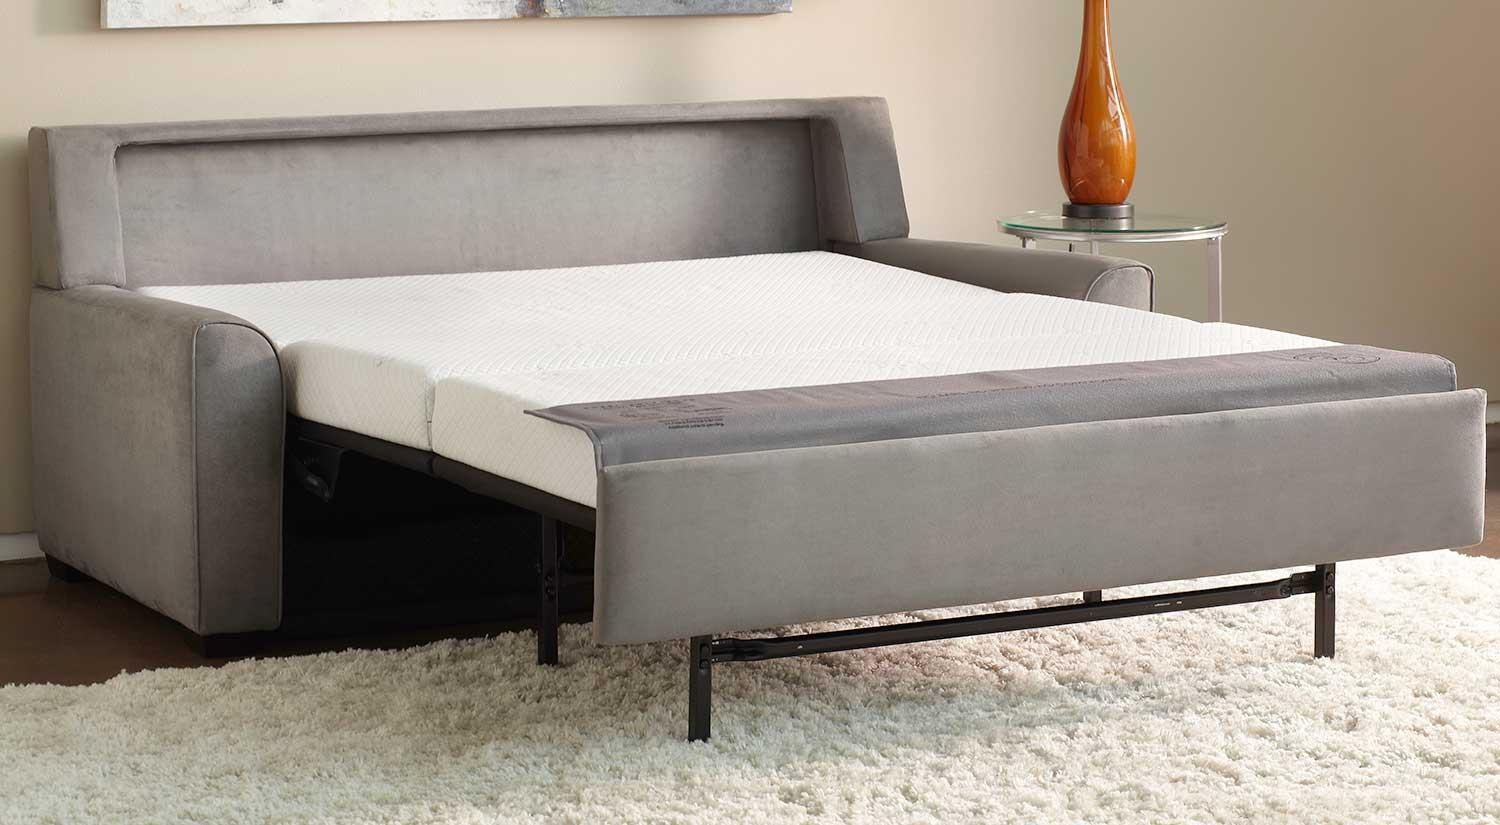 Circle Furniture – Ashton Comfort Sleeper | Sleep Sofas Ma Within Comfort Sleeper Sofas (View 7 of 22)